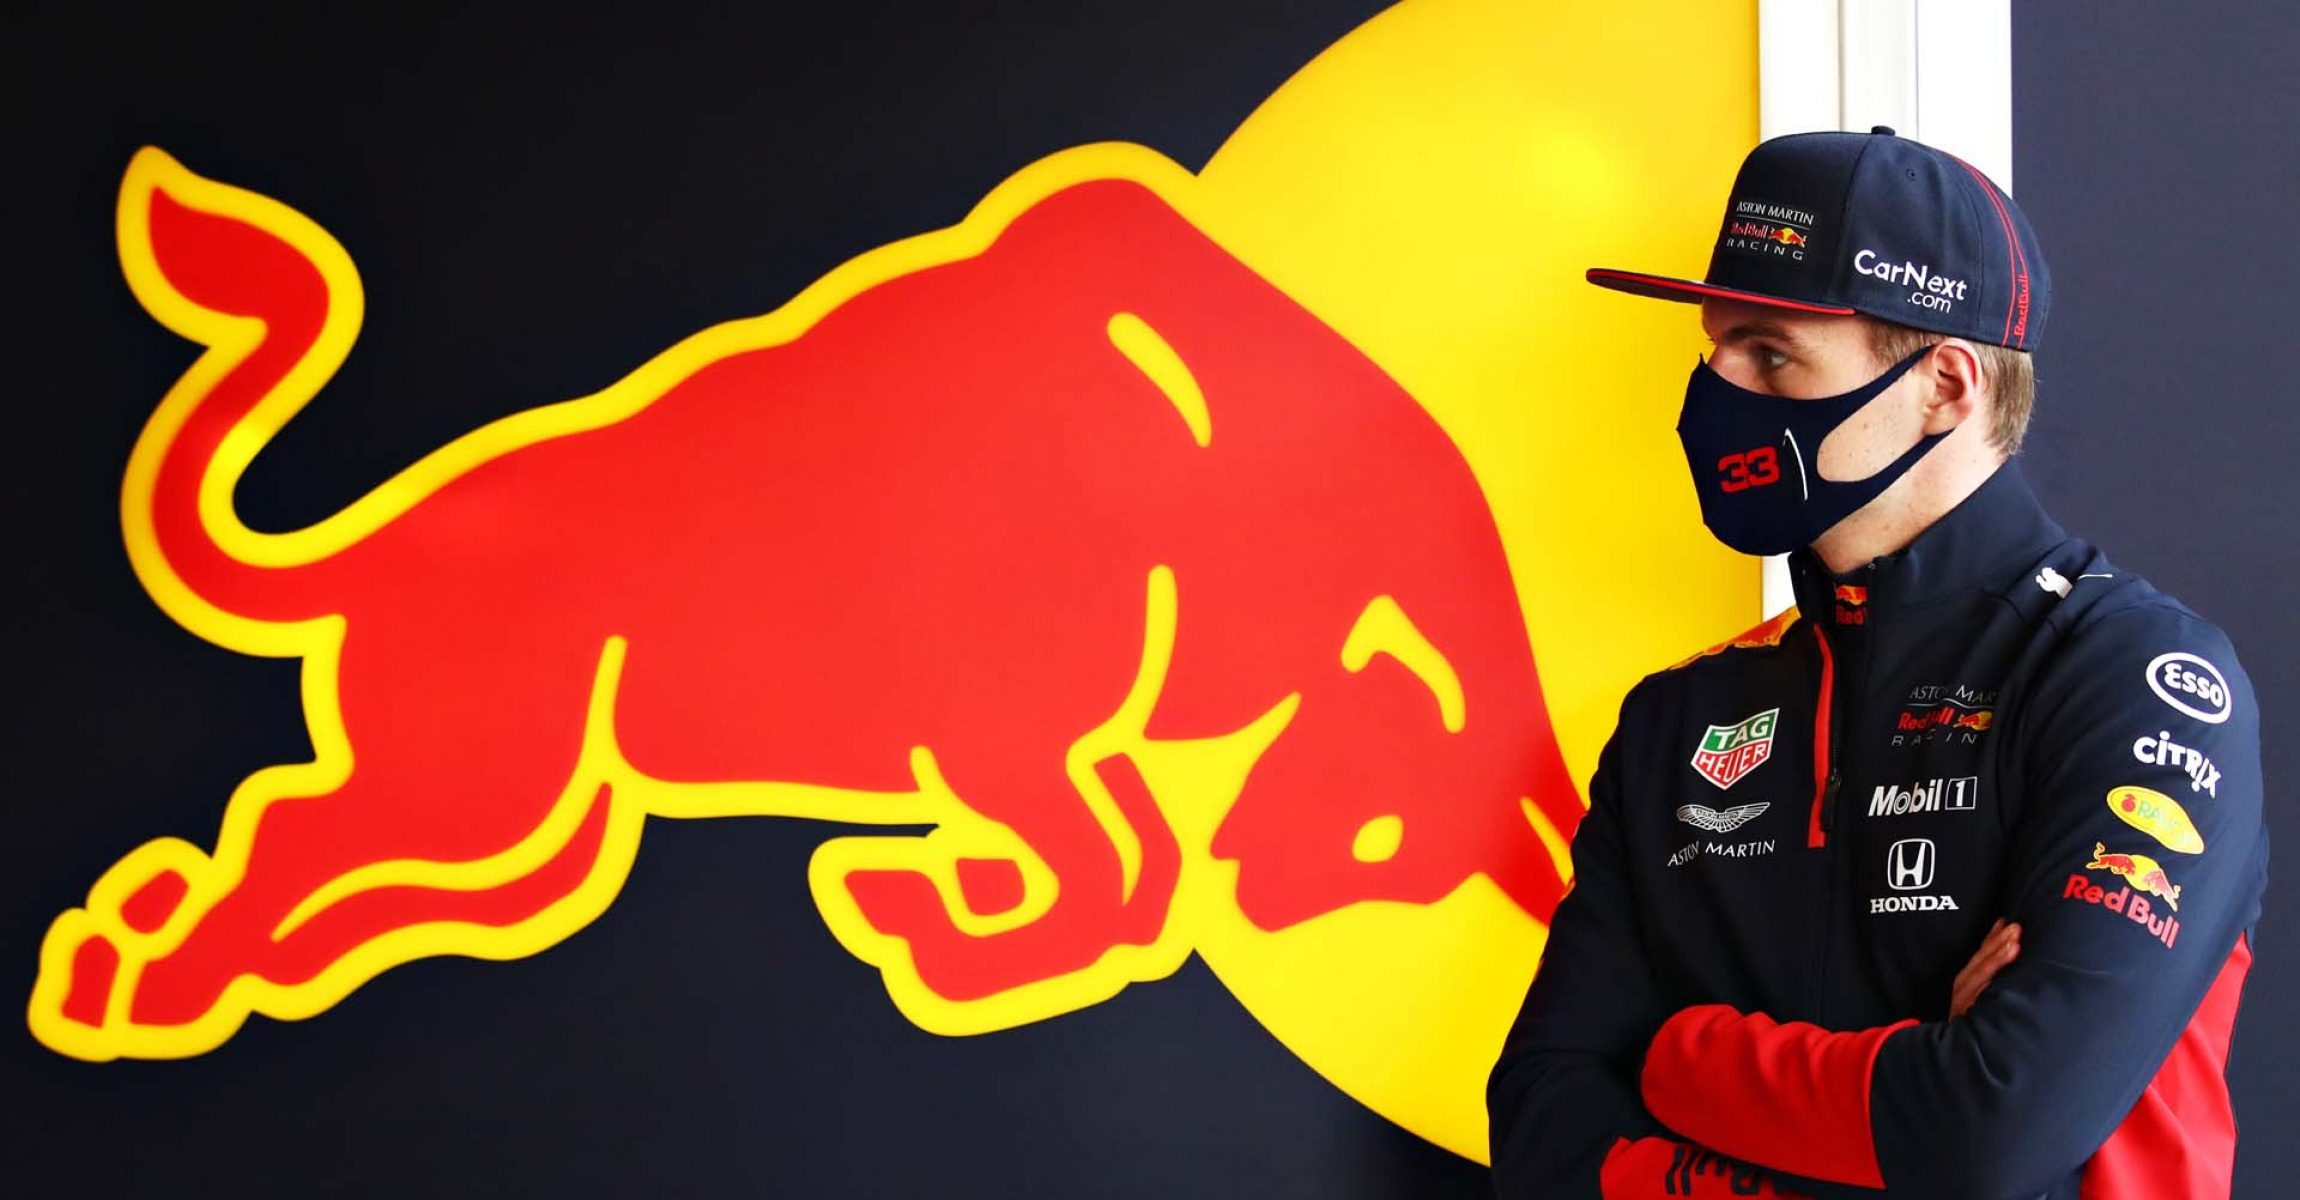 ISTANBUL, TURKEY - NOVEMBER 13: Max Verstappen of Netherlands and Red Bull Racing looks on in the garage during practice ahead of the F1 Grand Prix of Turkey at Intercity Istanbul Park on November 13, 2020 in Istanbul, Turkey. (Photo by Bryn Lennon/Getty Images)